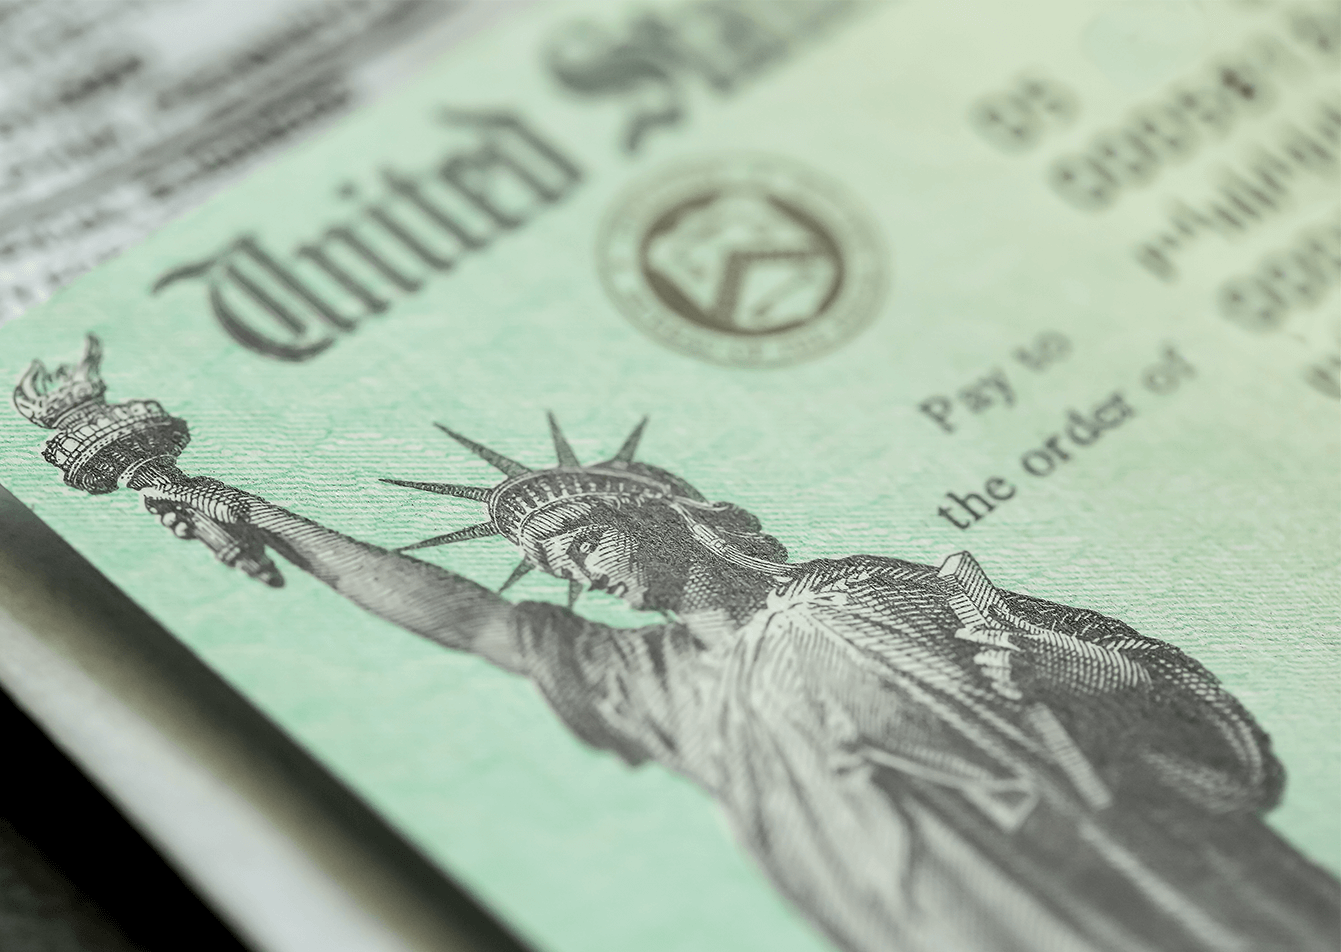 Follow These Step to Know When Your Stimulus Payment Arrives